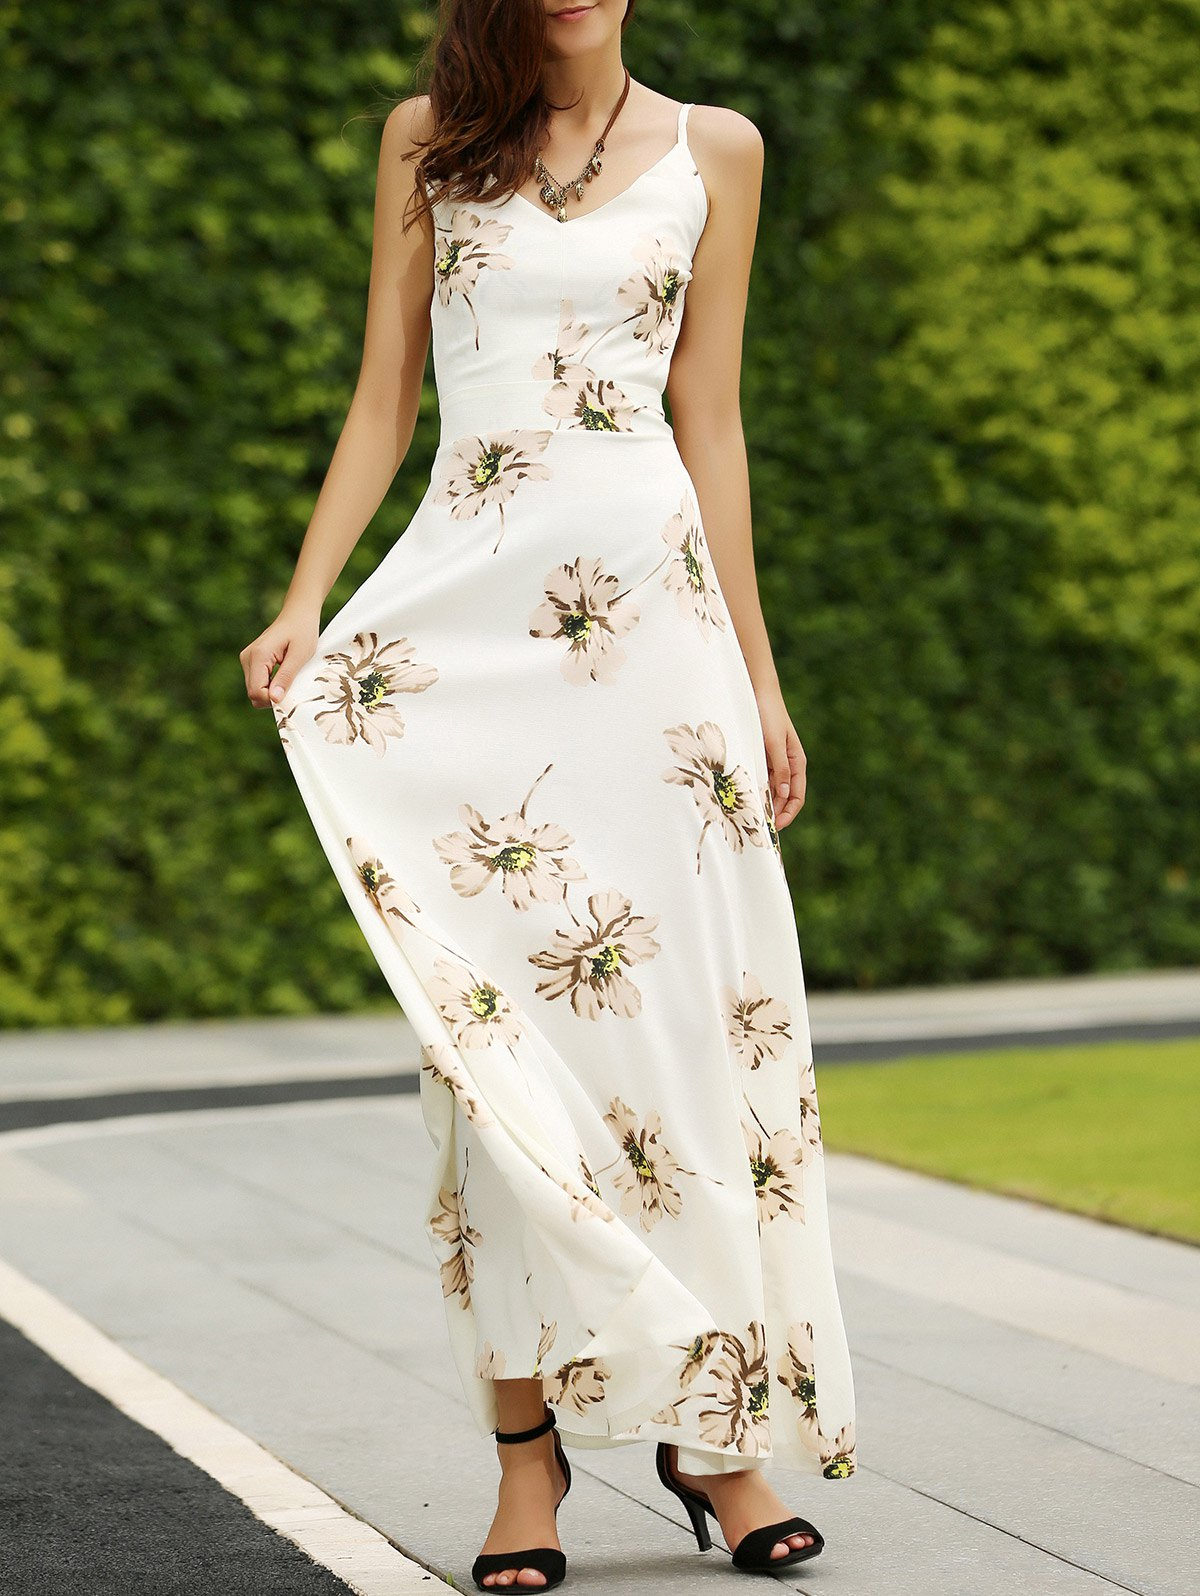 Spaghetti Straps Backless Floral Print Maxi Dress